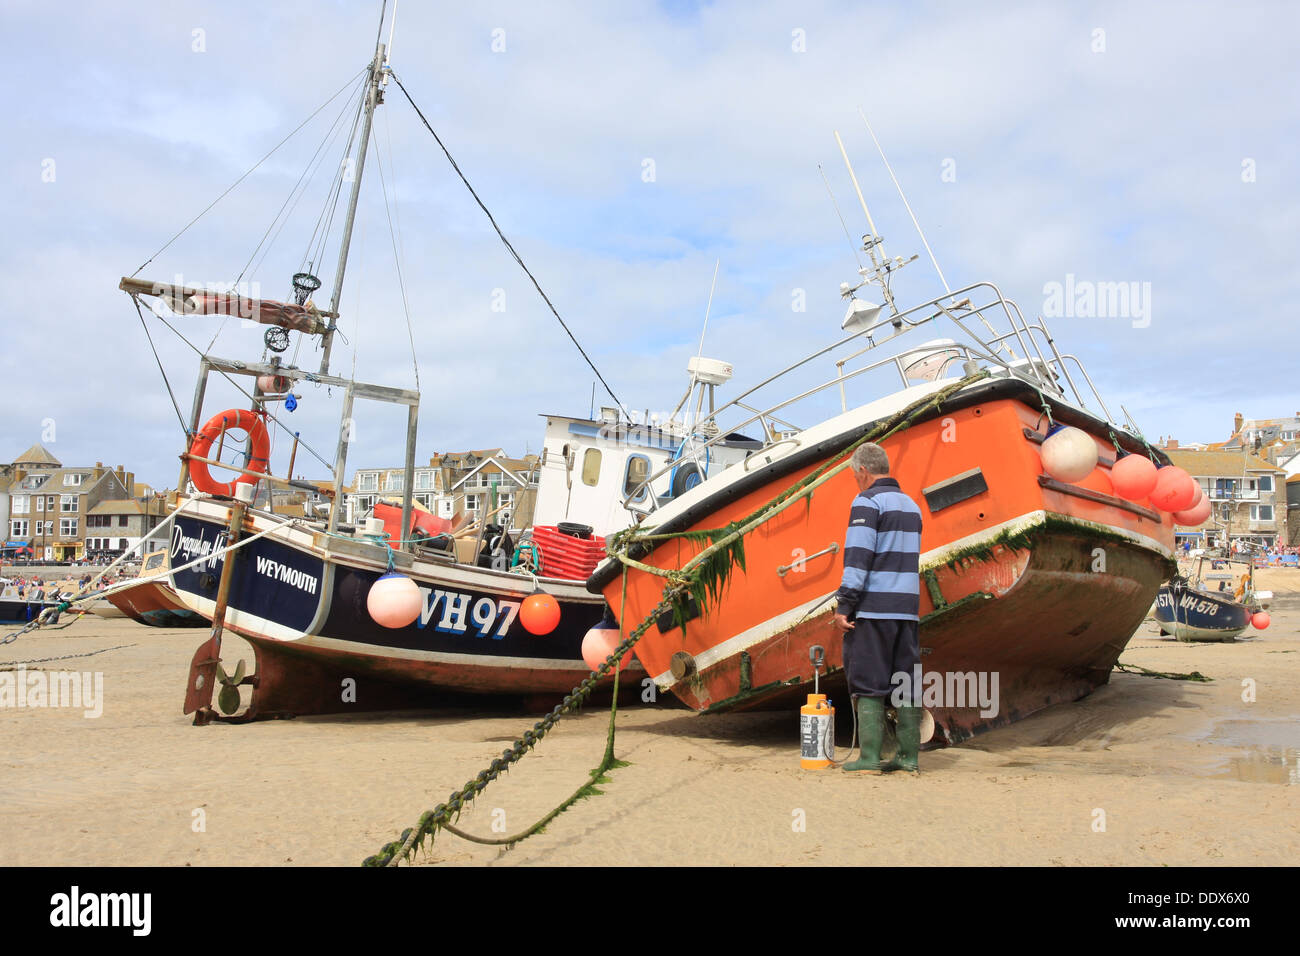 A man cleans algae from the hull of a fishing boat in St,Ives harbor. - Stock Image